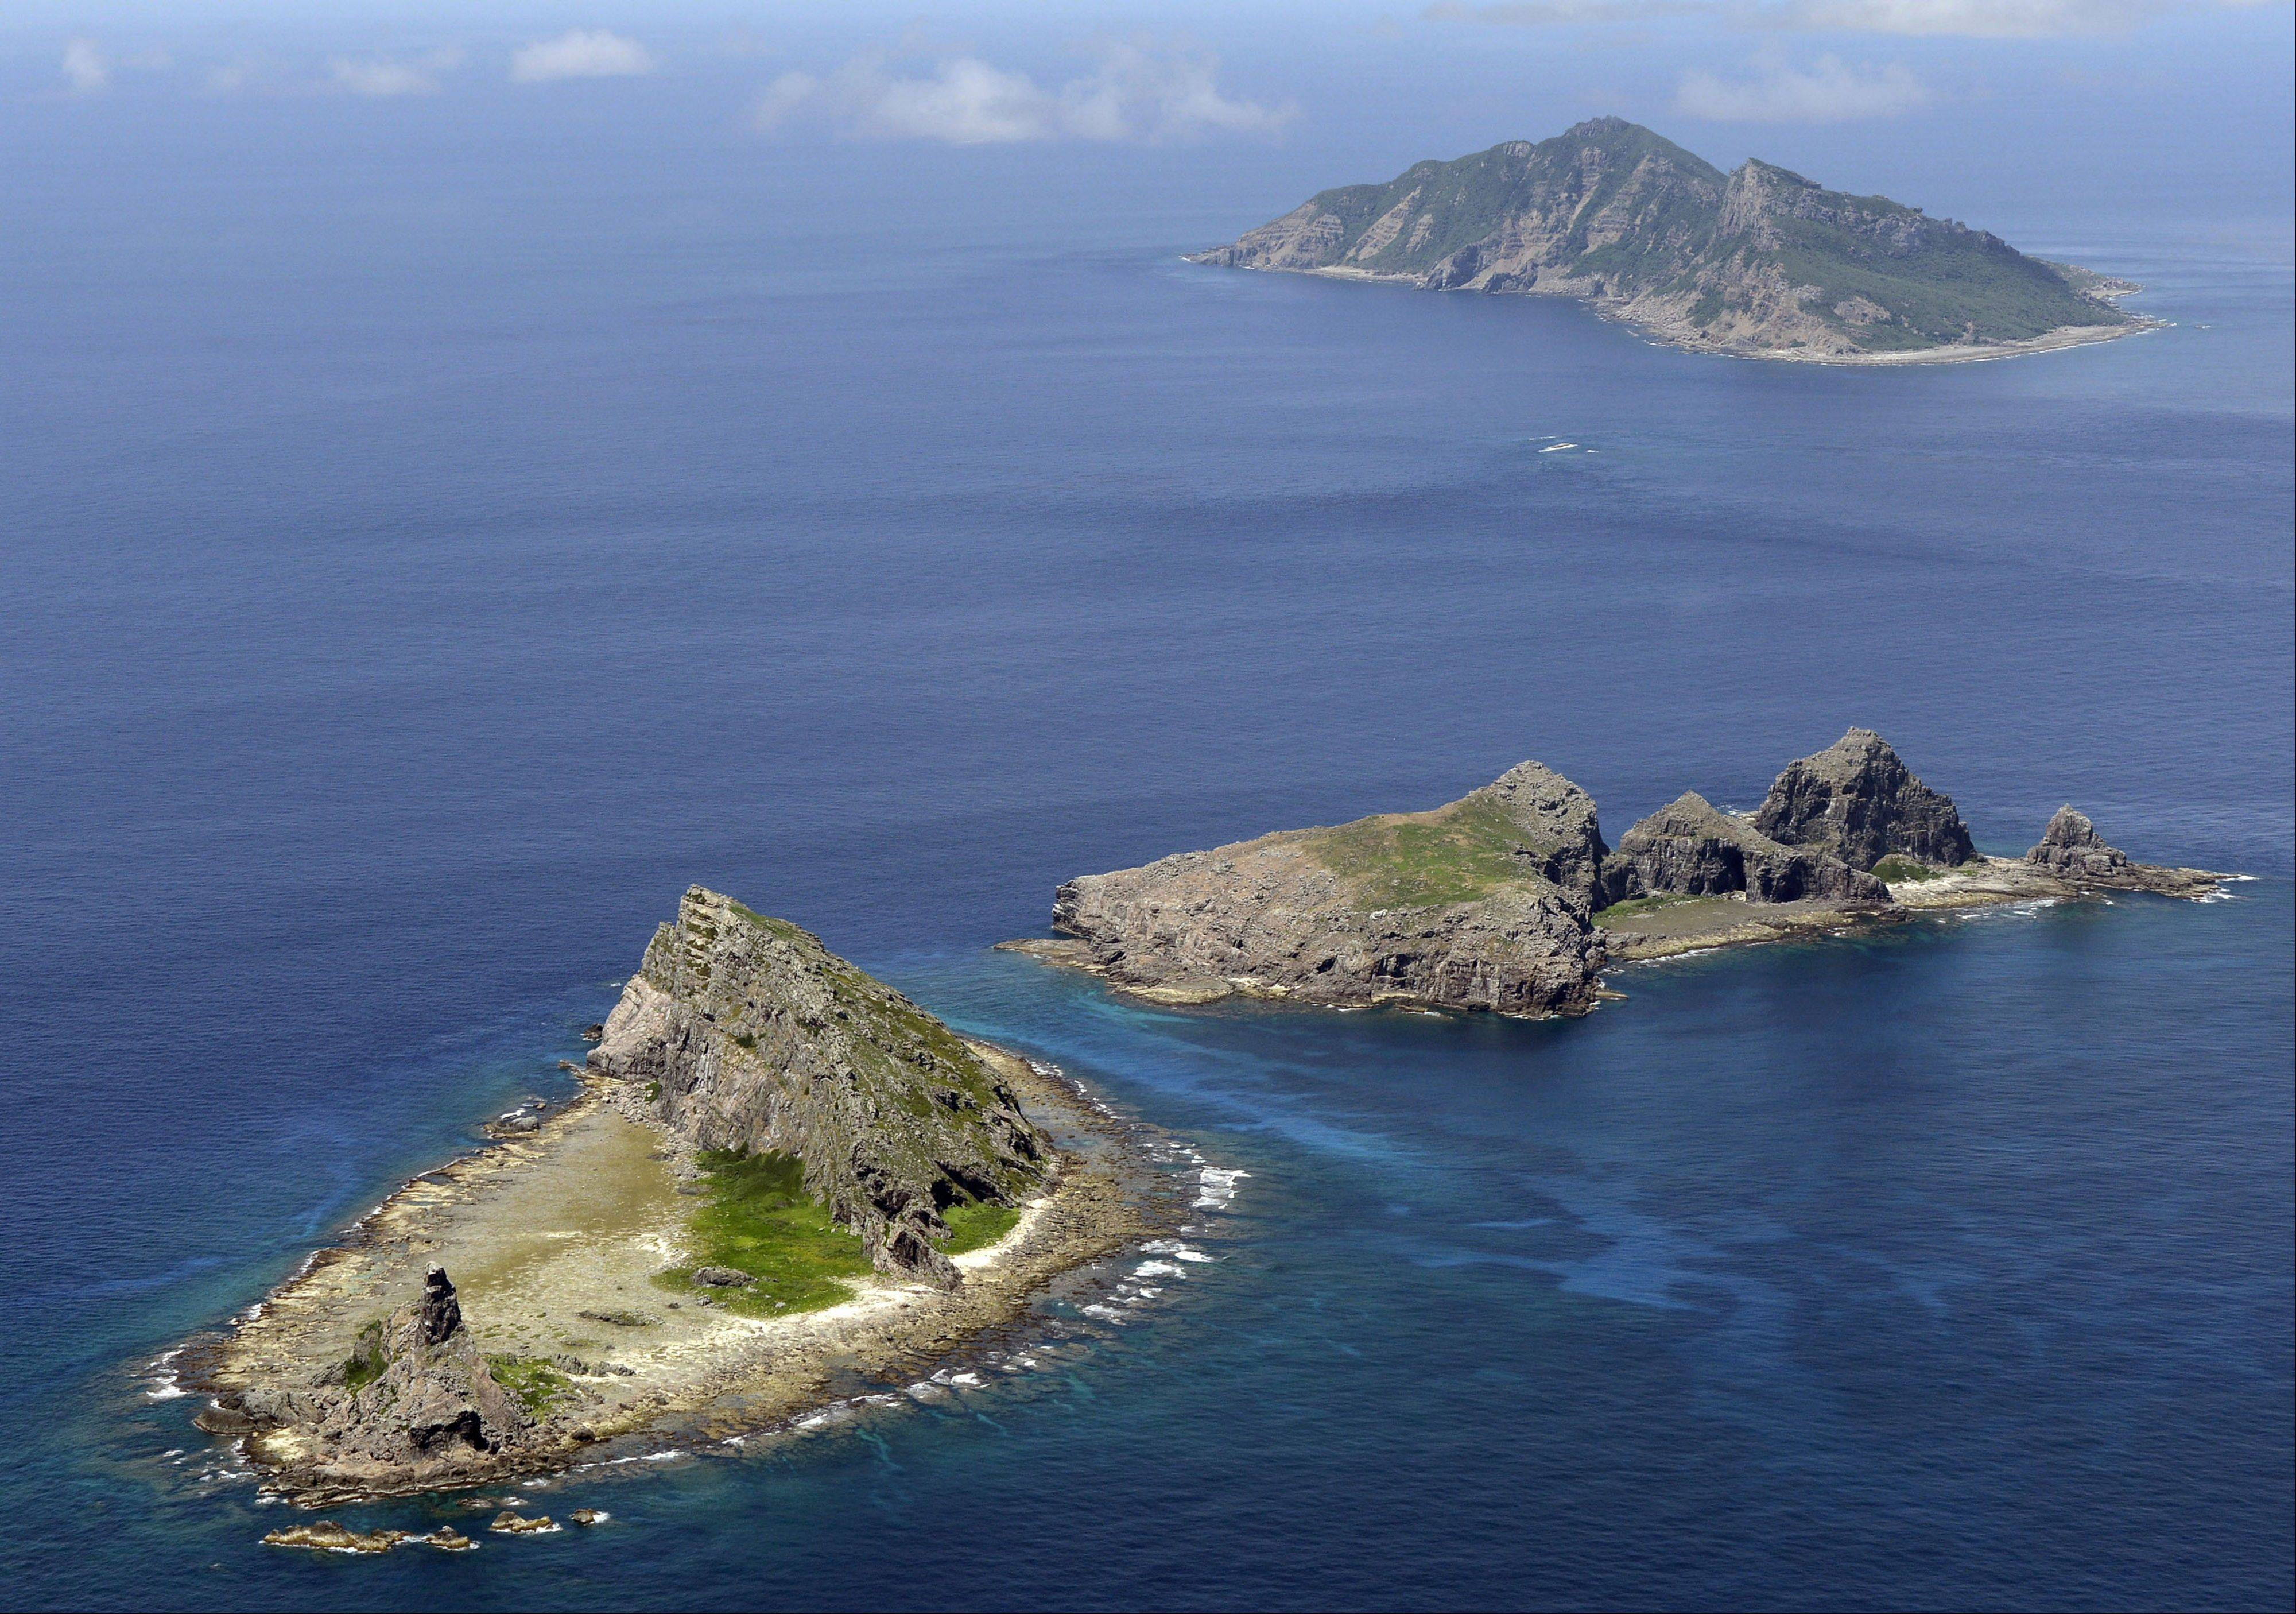 Associated Press/2012 photo The tiny islands in the East China Sea, called Senkaku in Japanese and Diaoyu in Chinese, are center stage in a dispute betweem China and Japan.